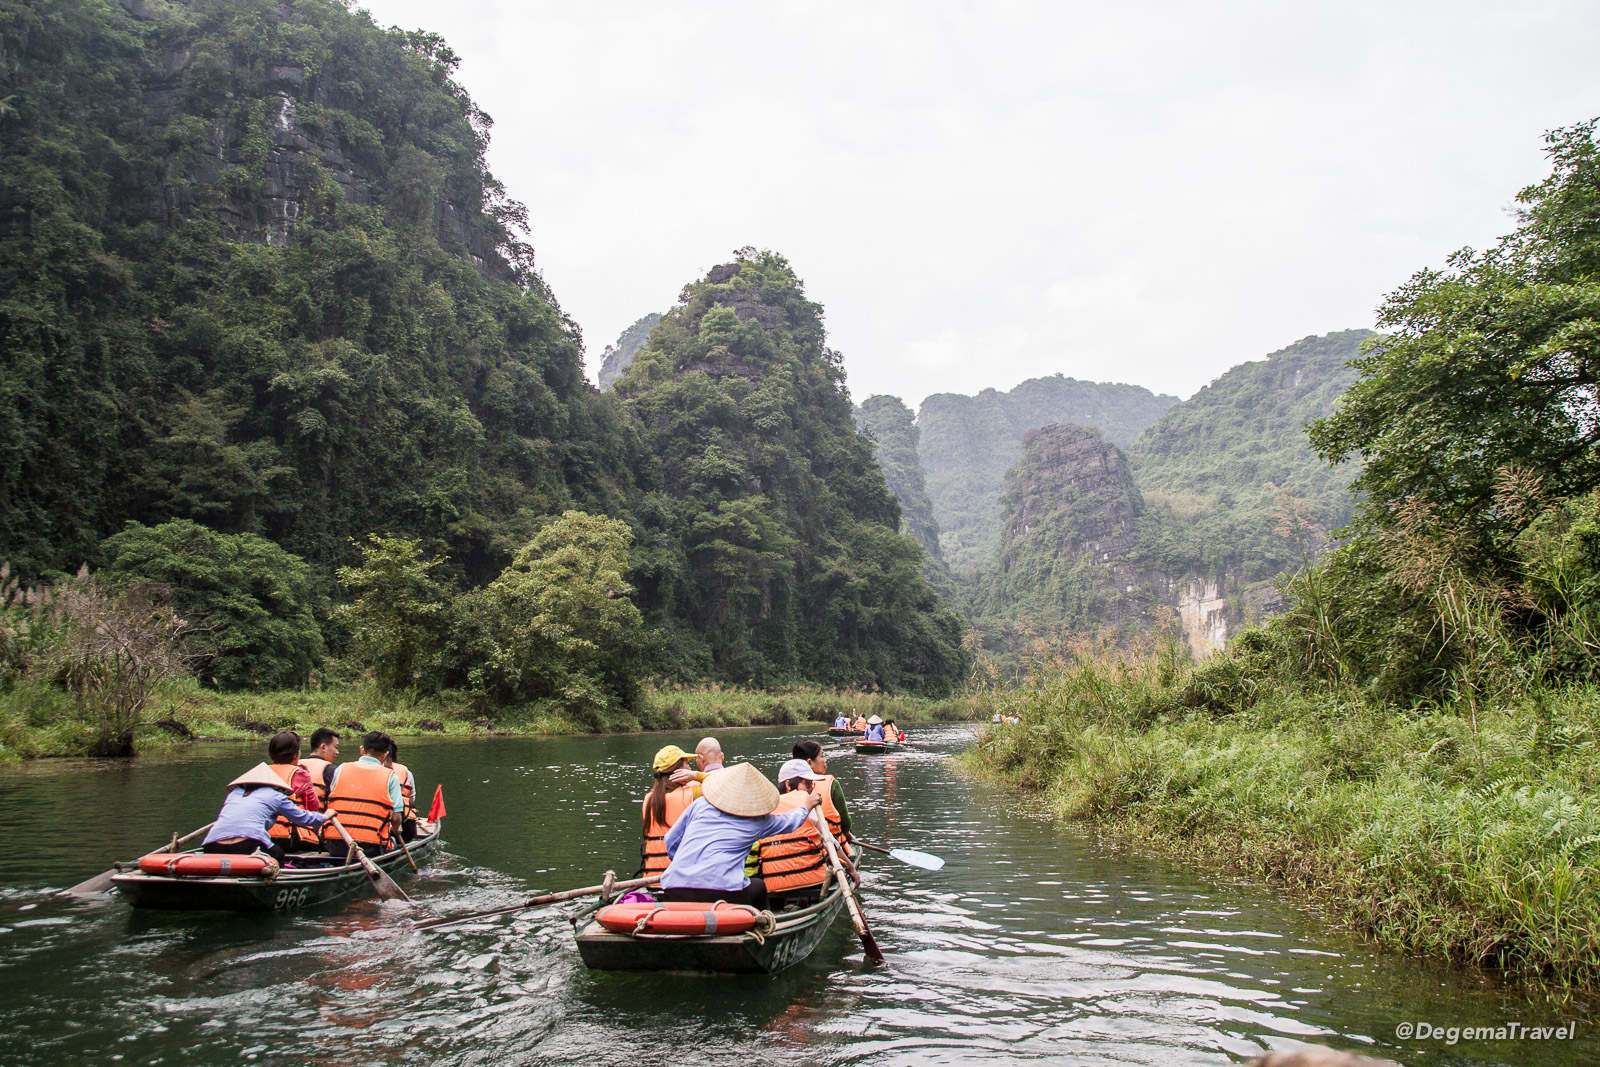 Playing the Tourist in Tam Coc